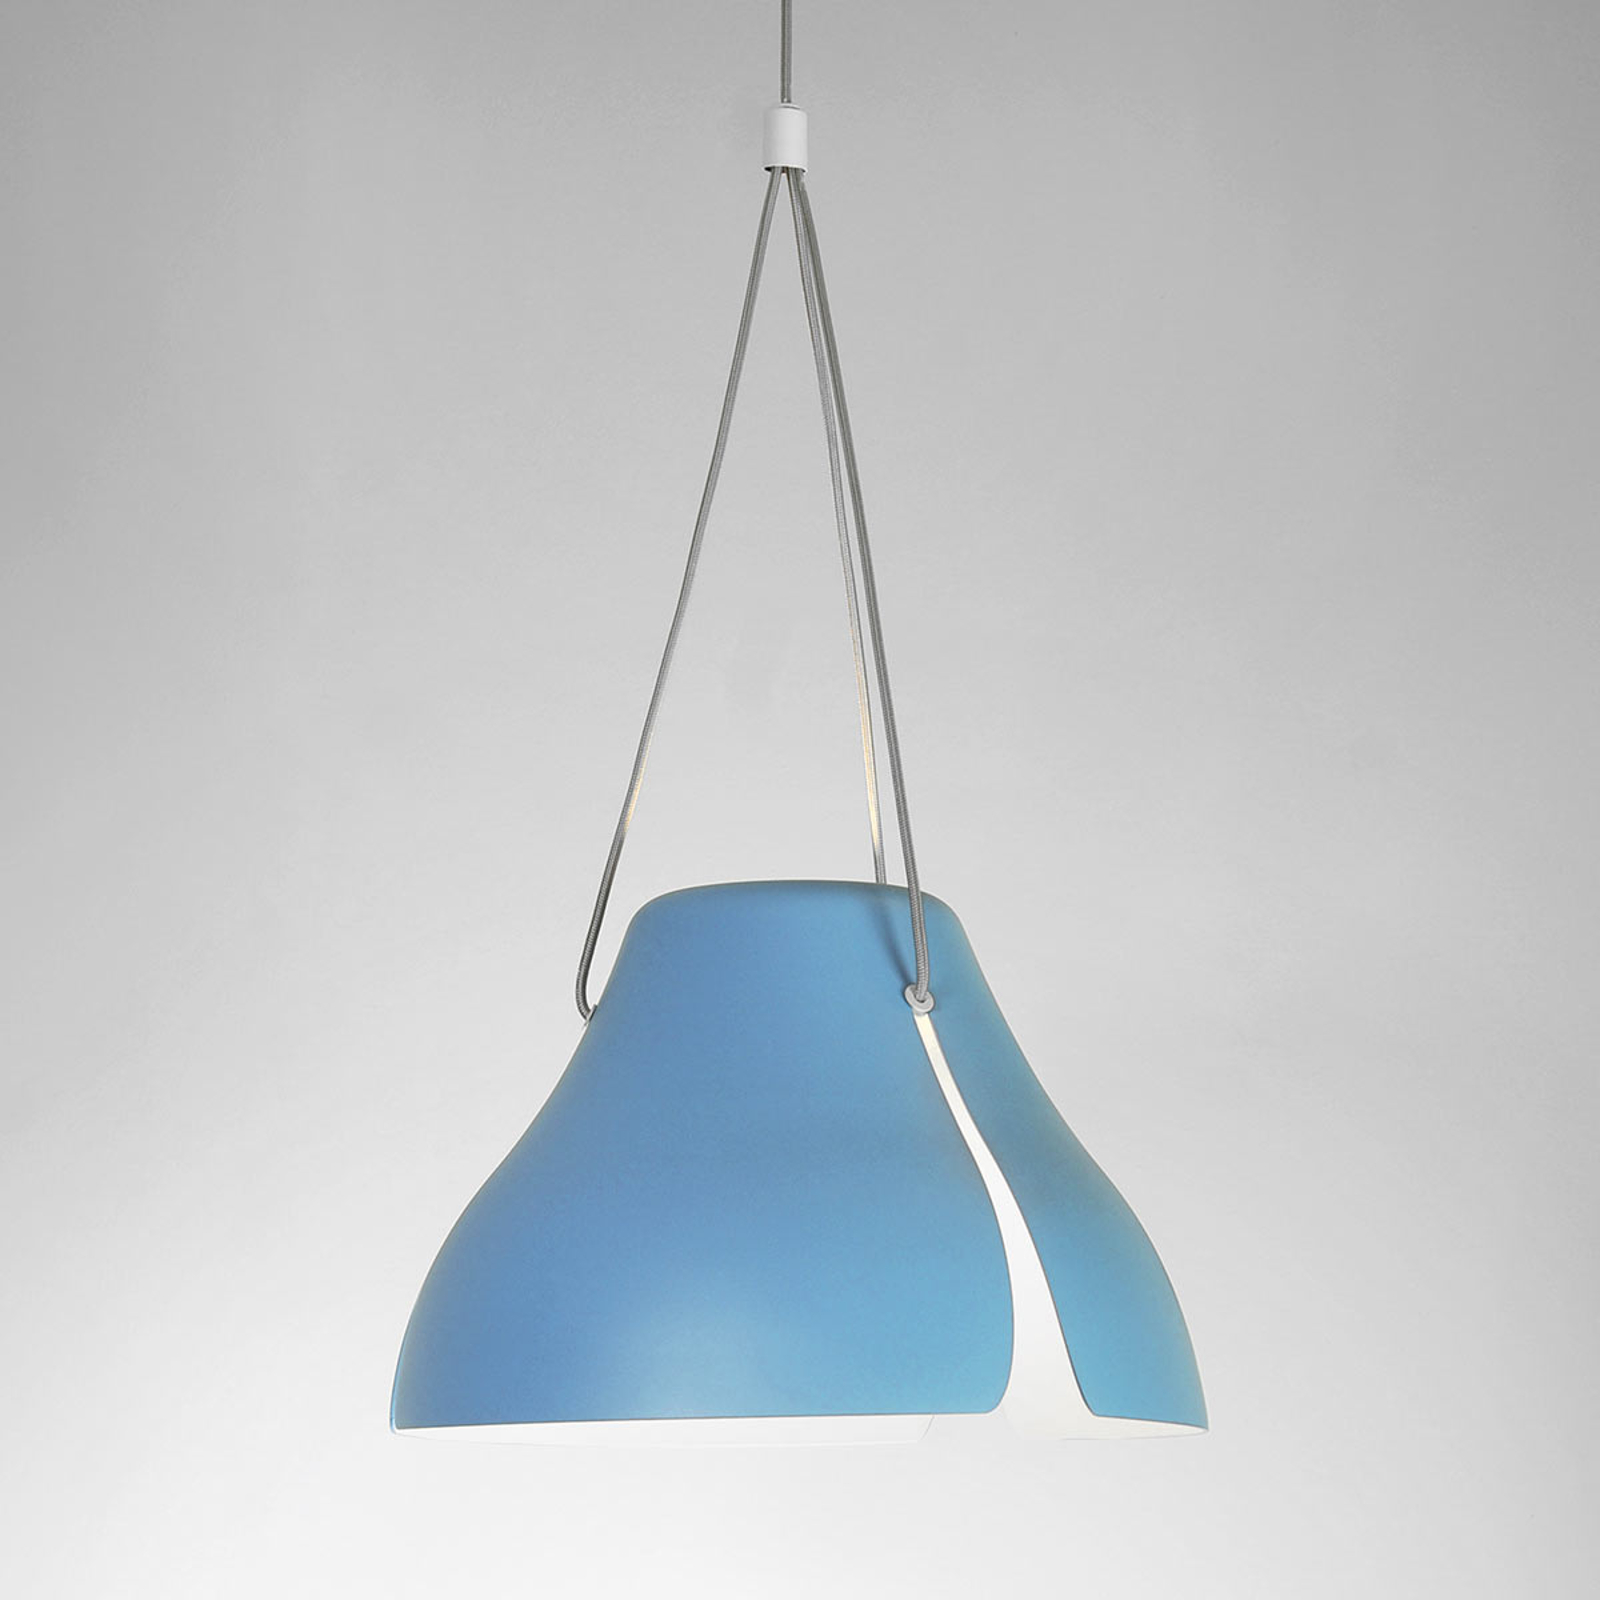 Suspension LED Gingko S40 40 cm bleue